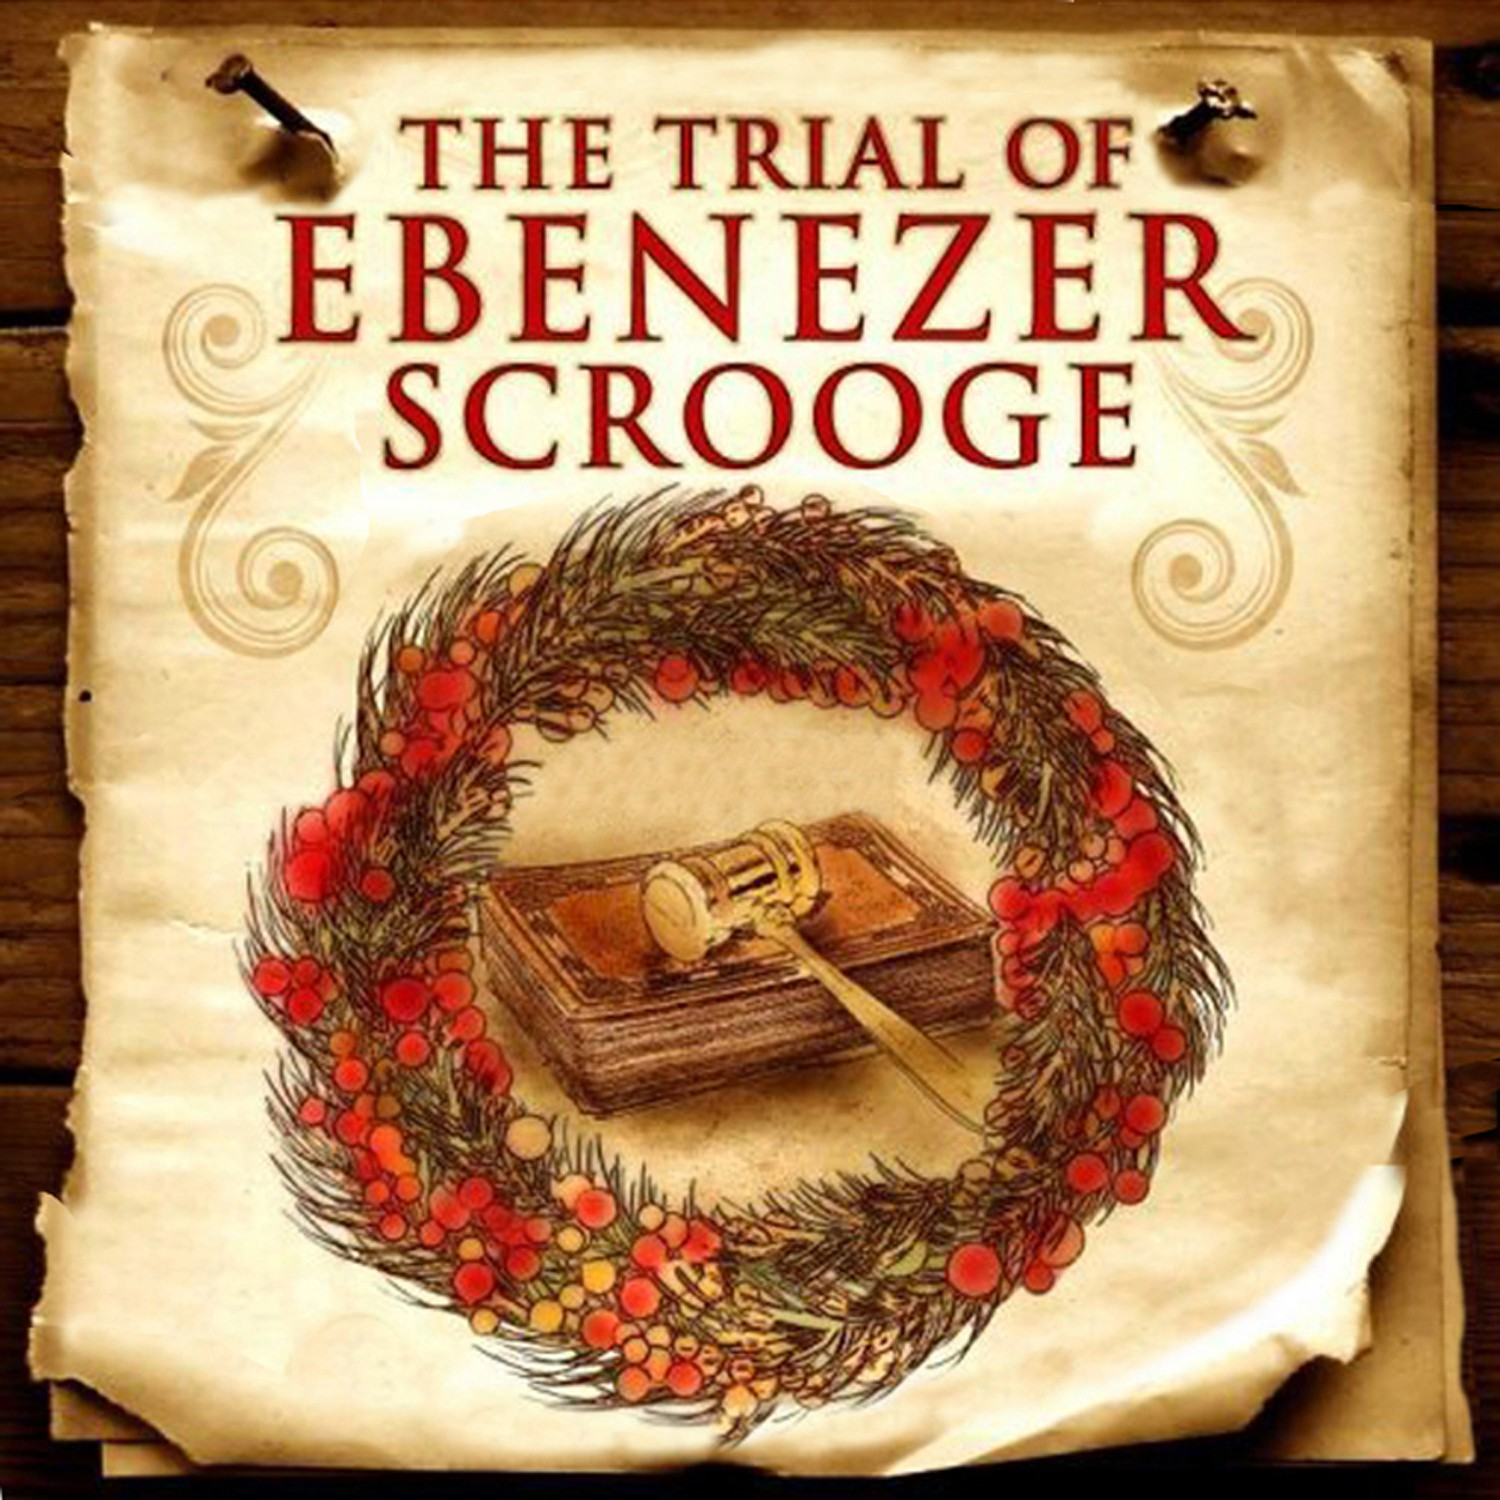 Trial of Ebenezer Scrooge